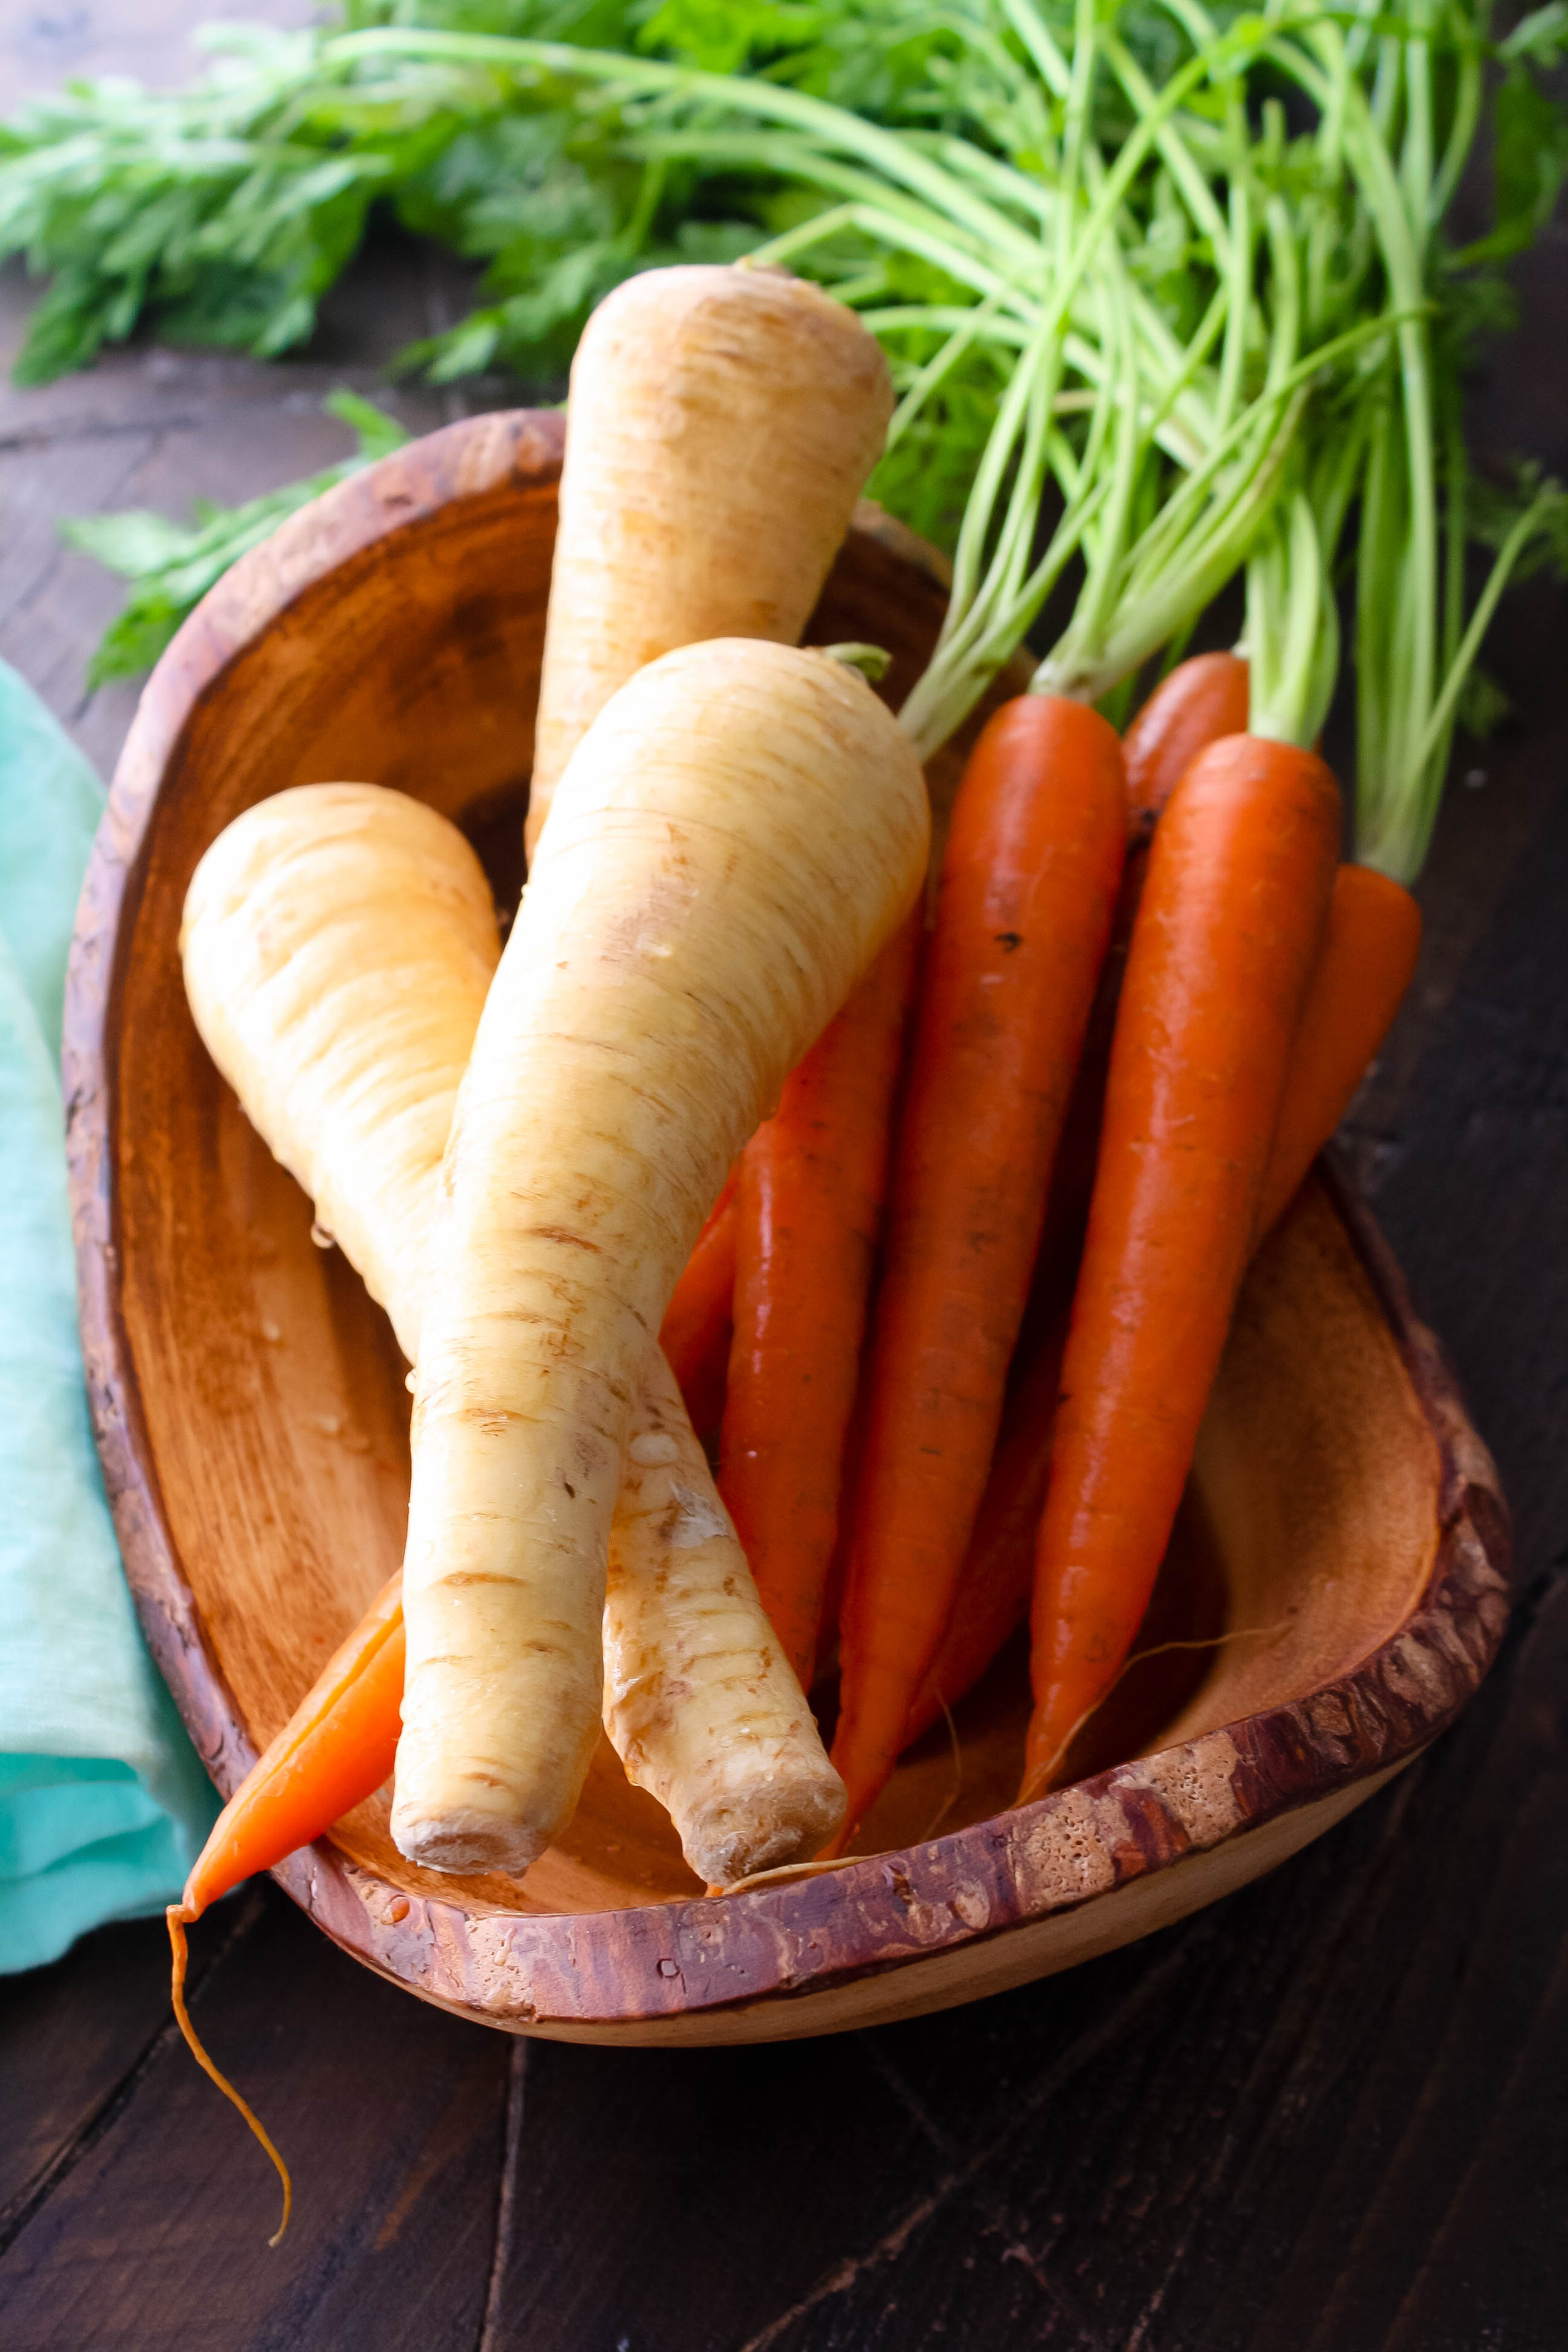 Roasted Carrot and Parsnip Soup with Carrot Greens Pesto is a delightful soup for any day of the week. You'll love Roasted Carrot and Parsnip Soup with Carrot Greens Pesto.